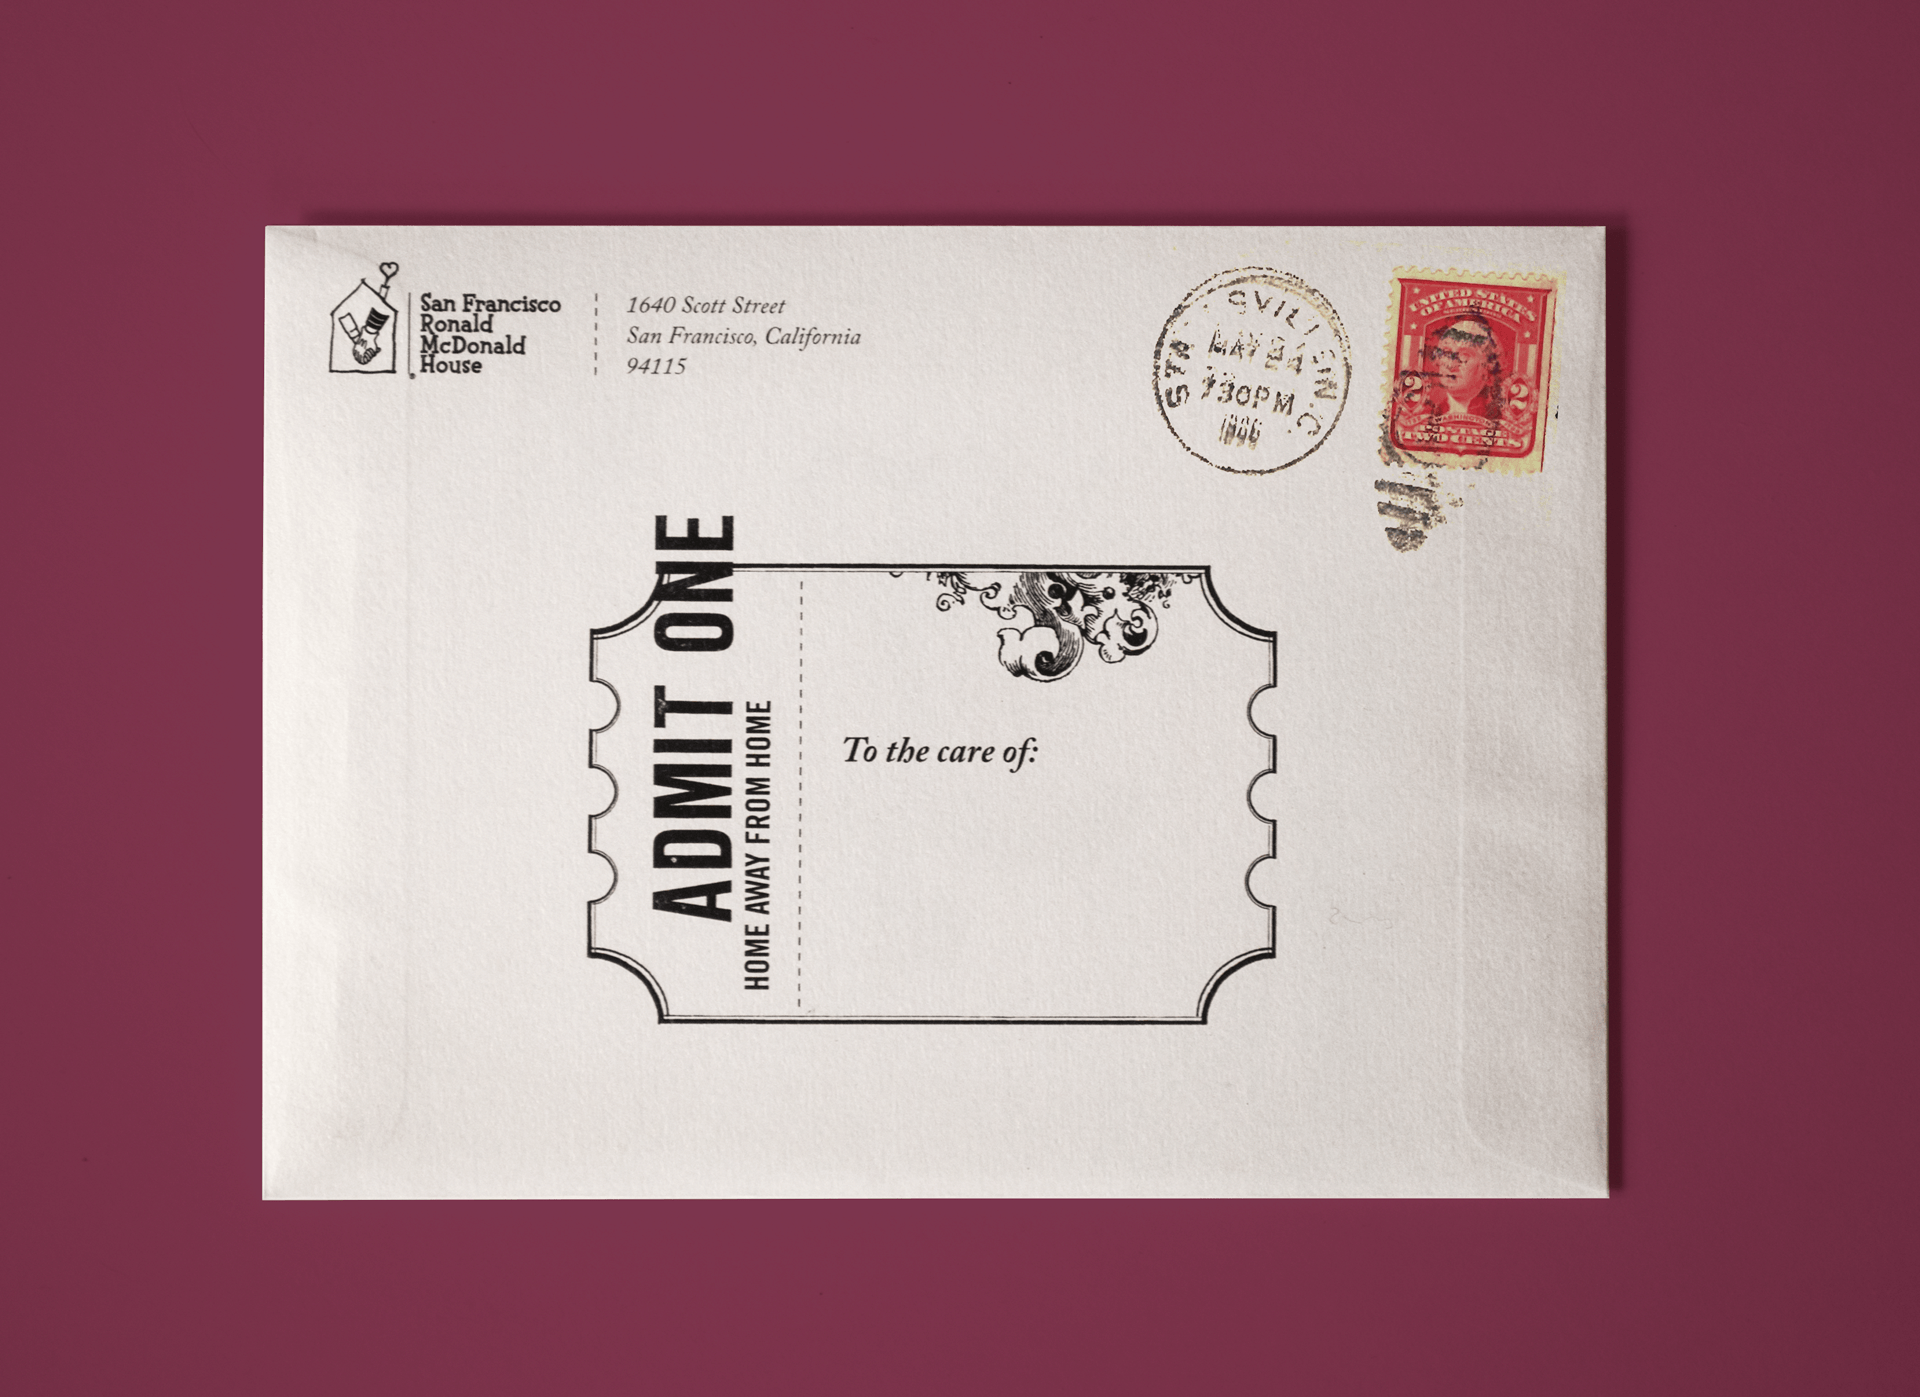 541cb735b3f63adf1e1e8a48_5354419ed71e51d61100024e_RMHSF_Envelope_stamped.png